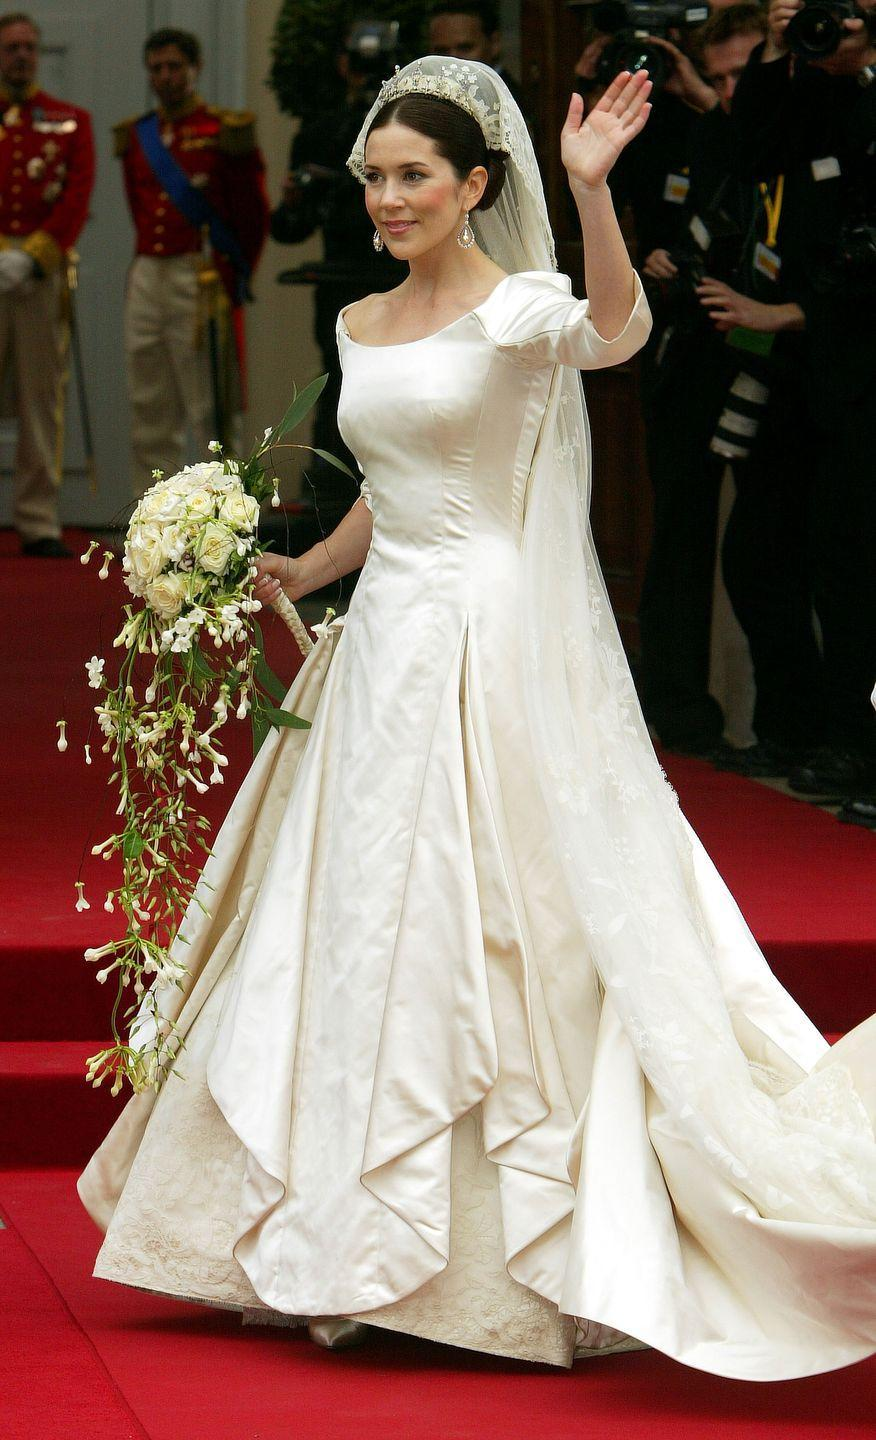 <p>Mary Elizabeth Donaldson wore a beautifully fitted gown with three-quarter length sleeves and pleating down the front, for her marriage to Danish Crown Prince Frederik. </p>